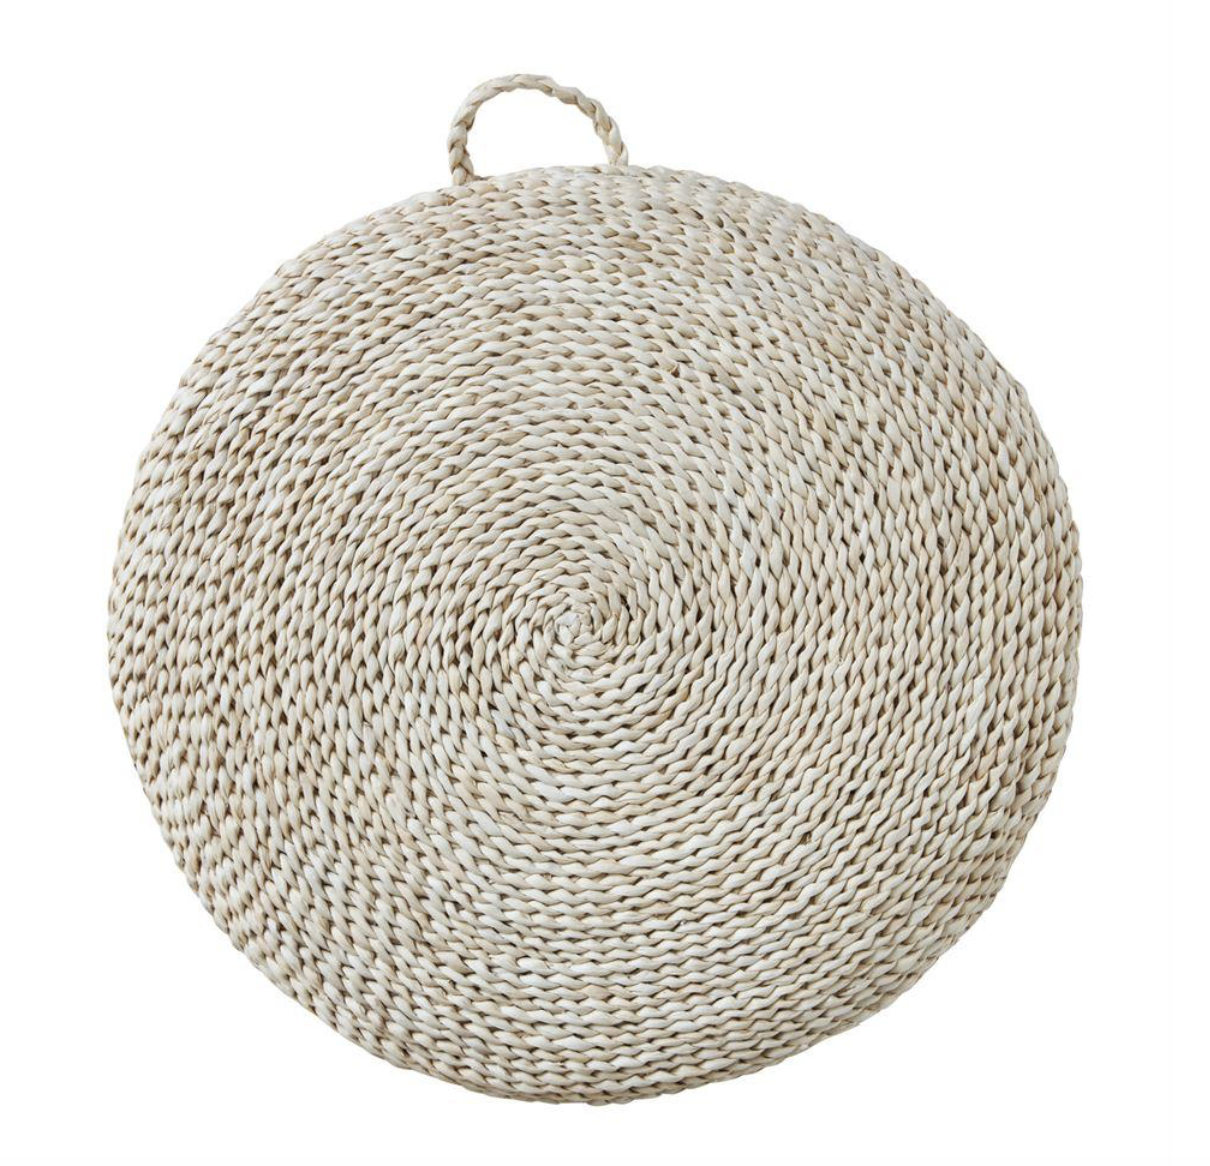 seagrass woven floor cushions.png